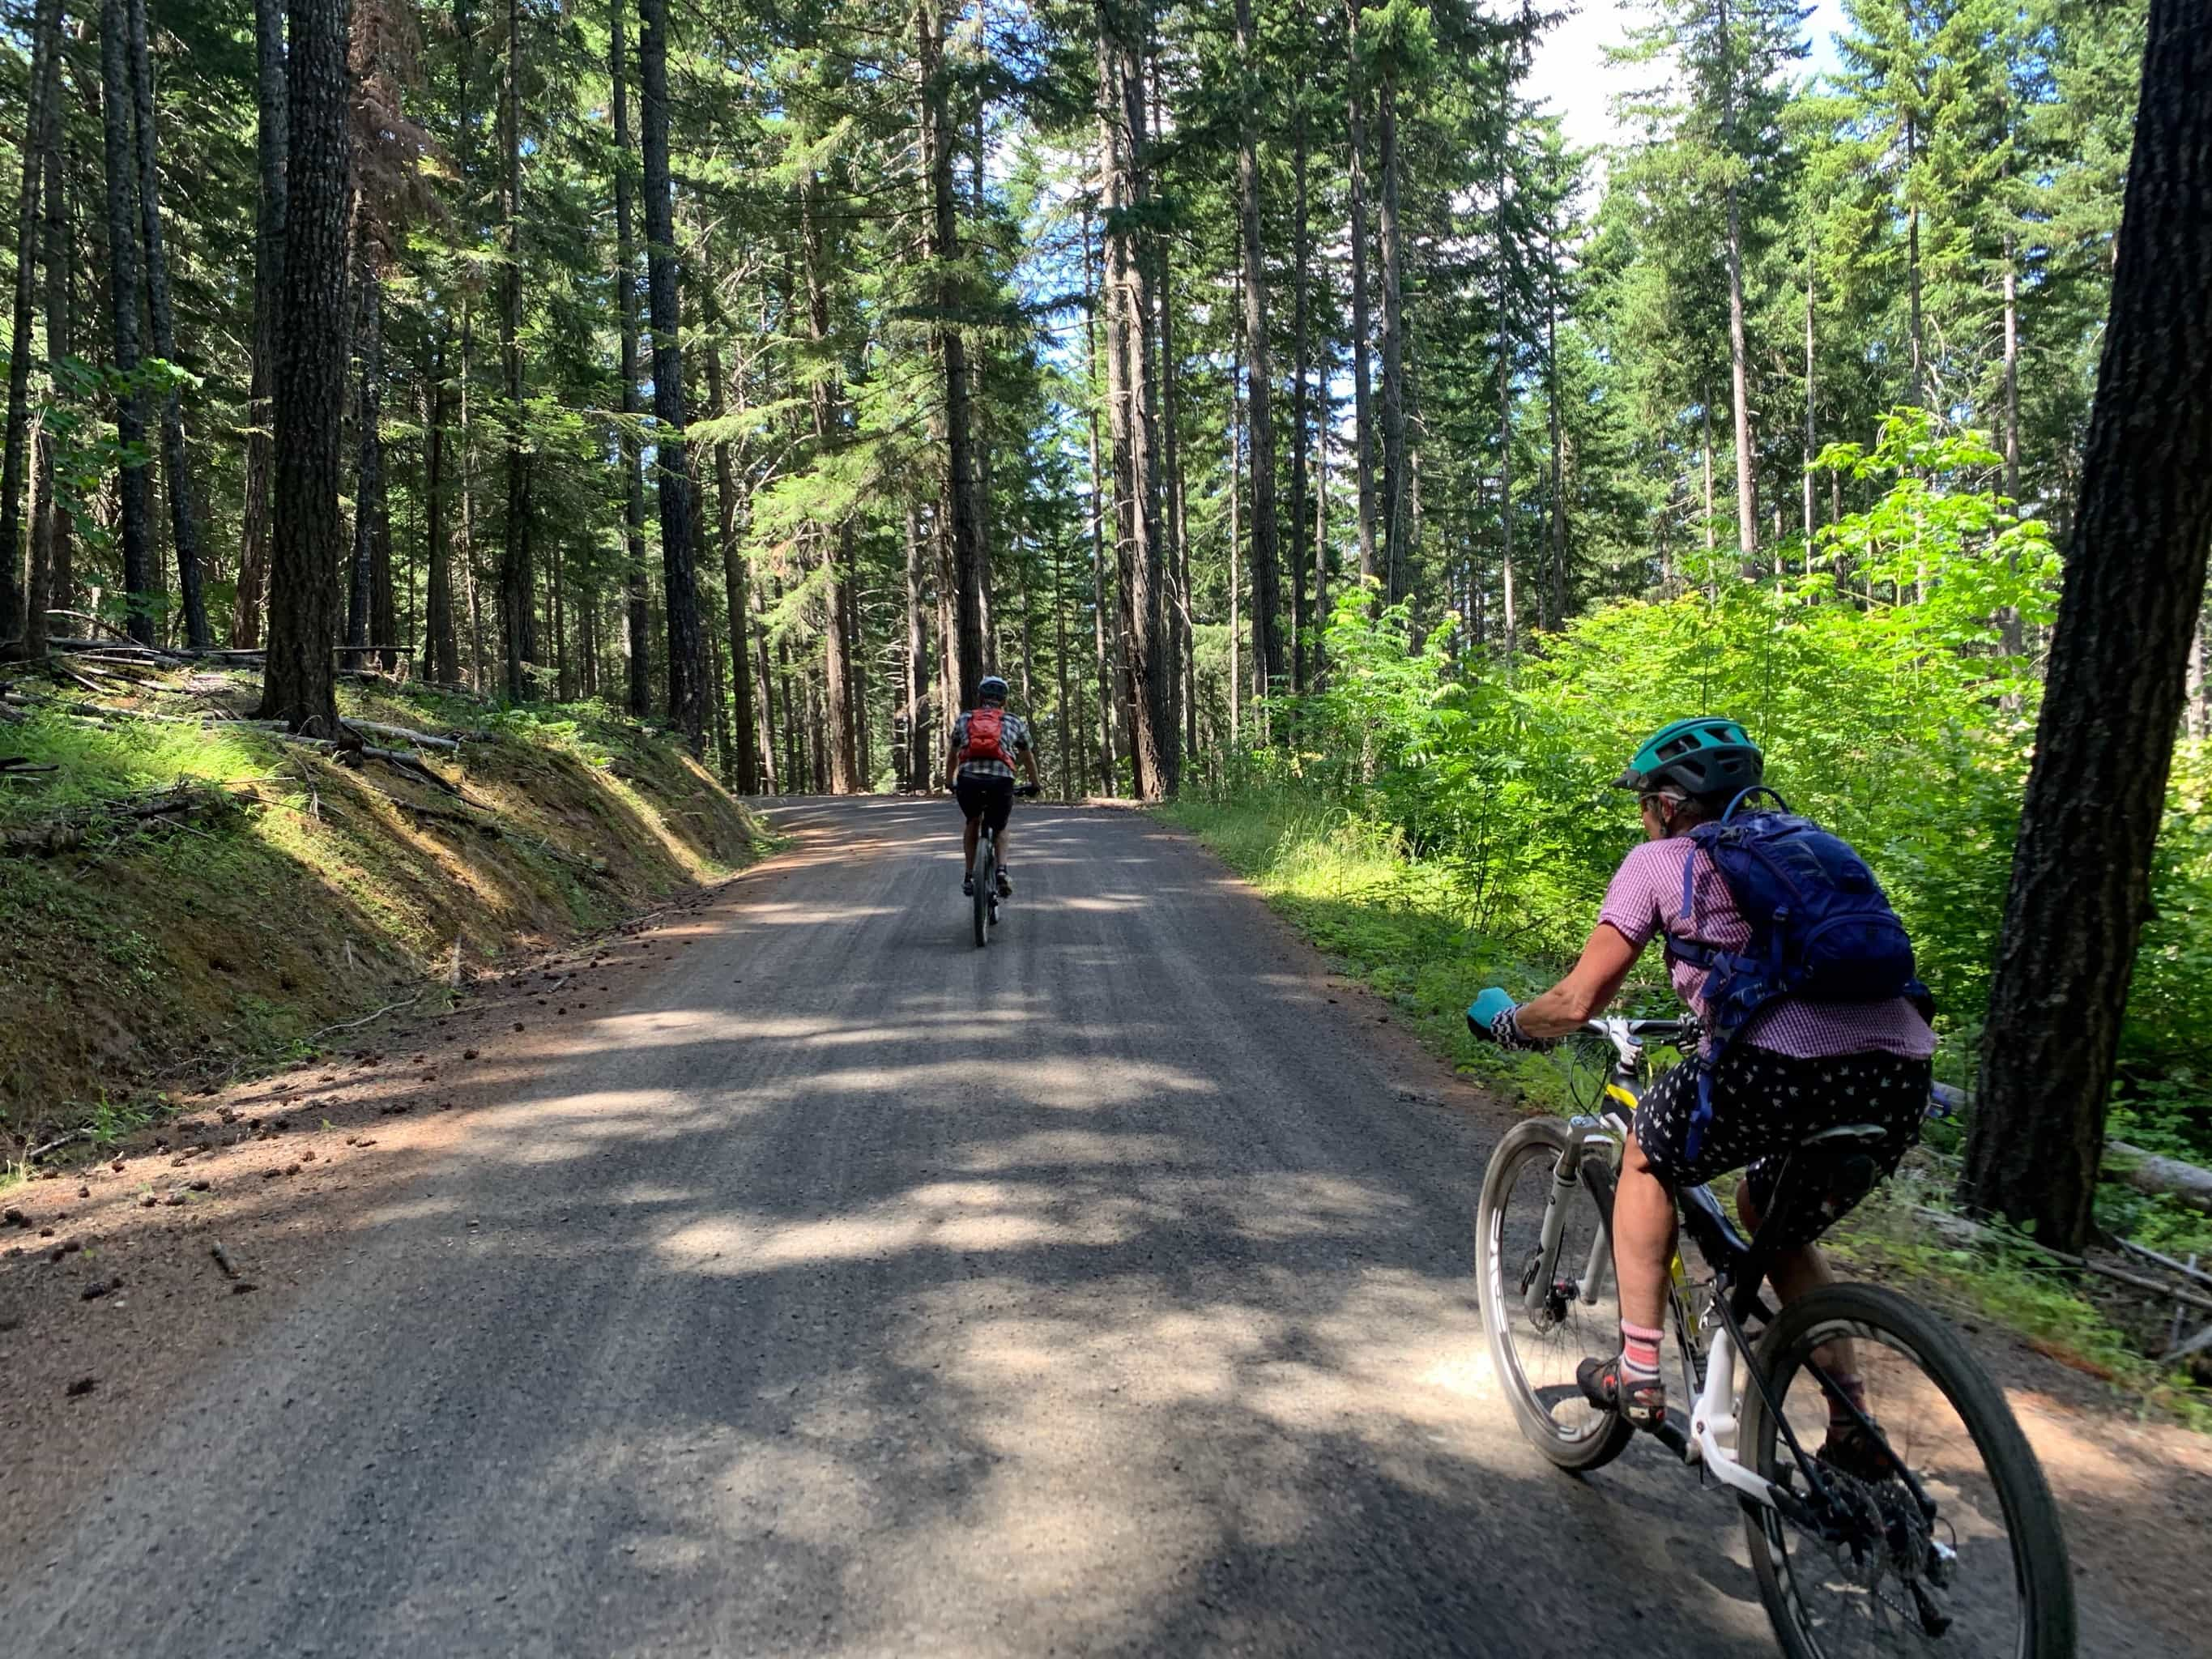 Gravel cyclists on the Lyle Snowden road in an old forest / timber section.